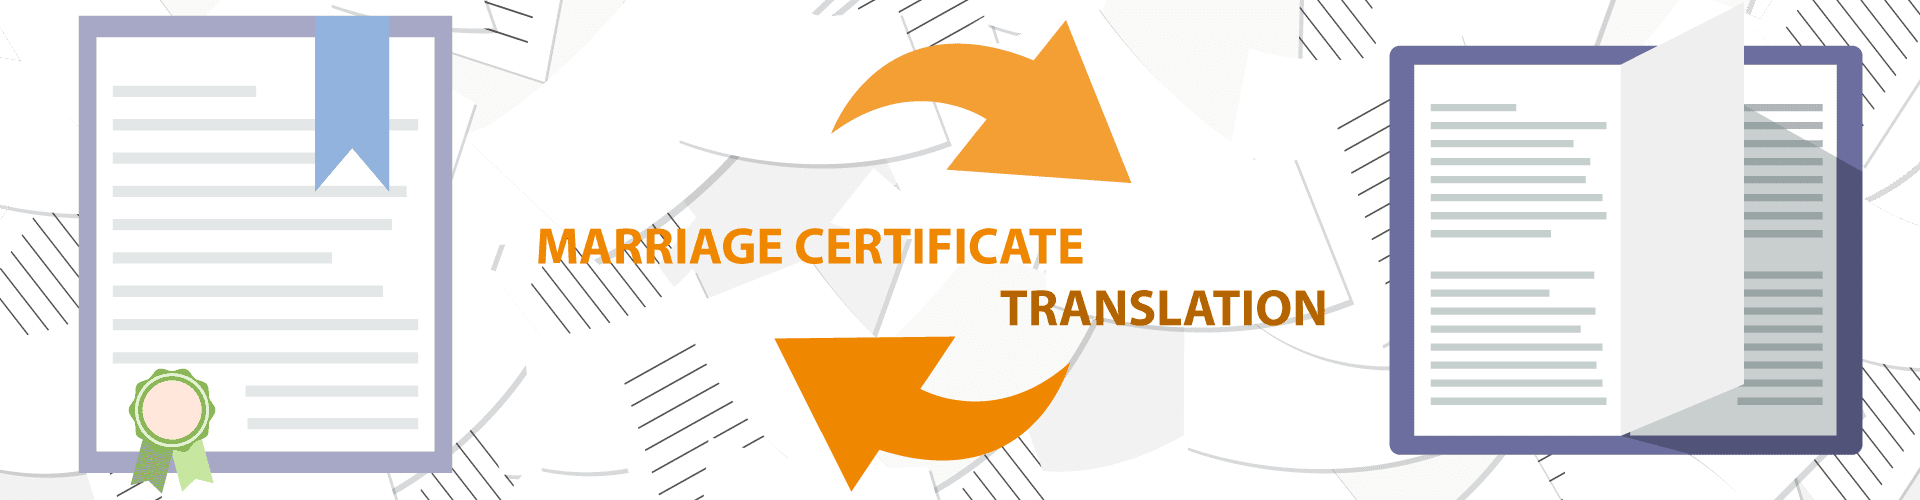 certified marriage certificate translation